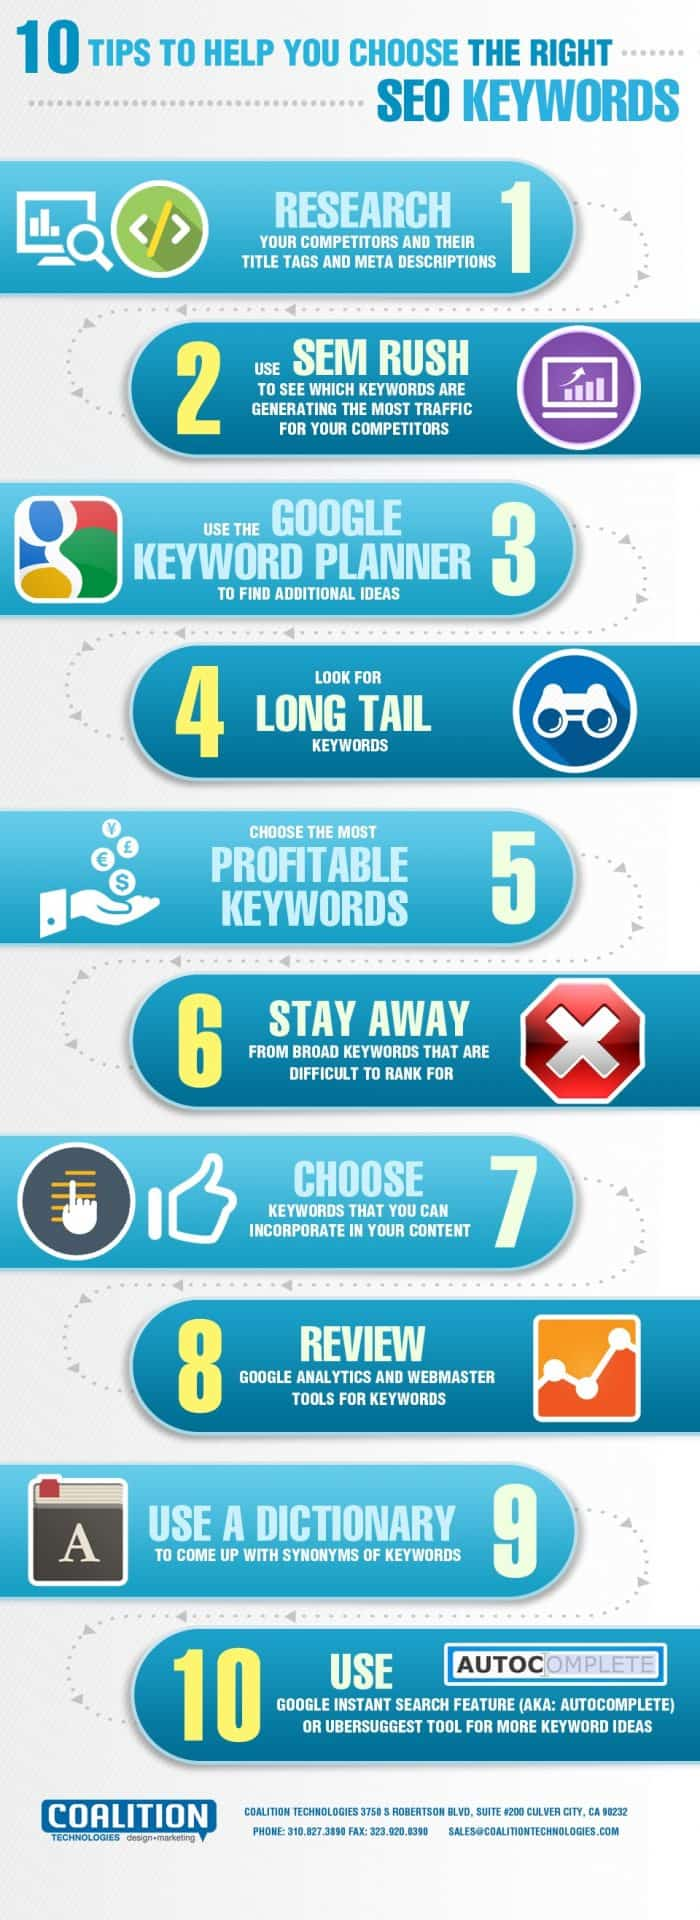 Tips to Choose Right Keywords - 1